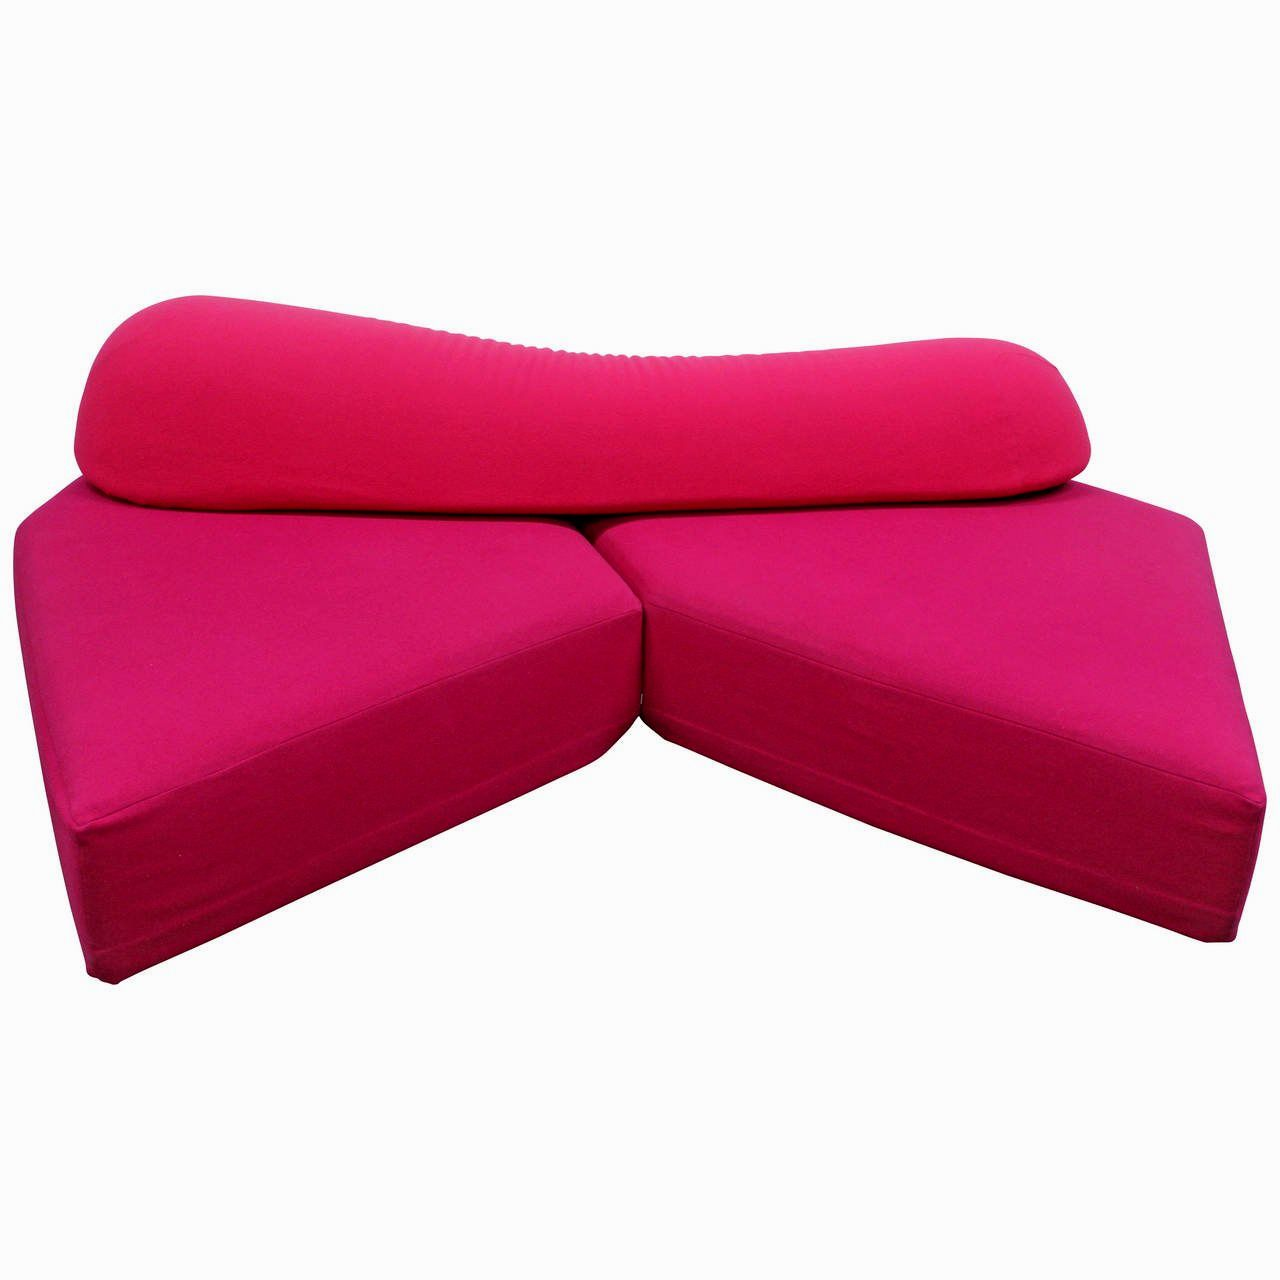 modern black sofa covers online-Cute Black sofa Covers Wallpaper